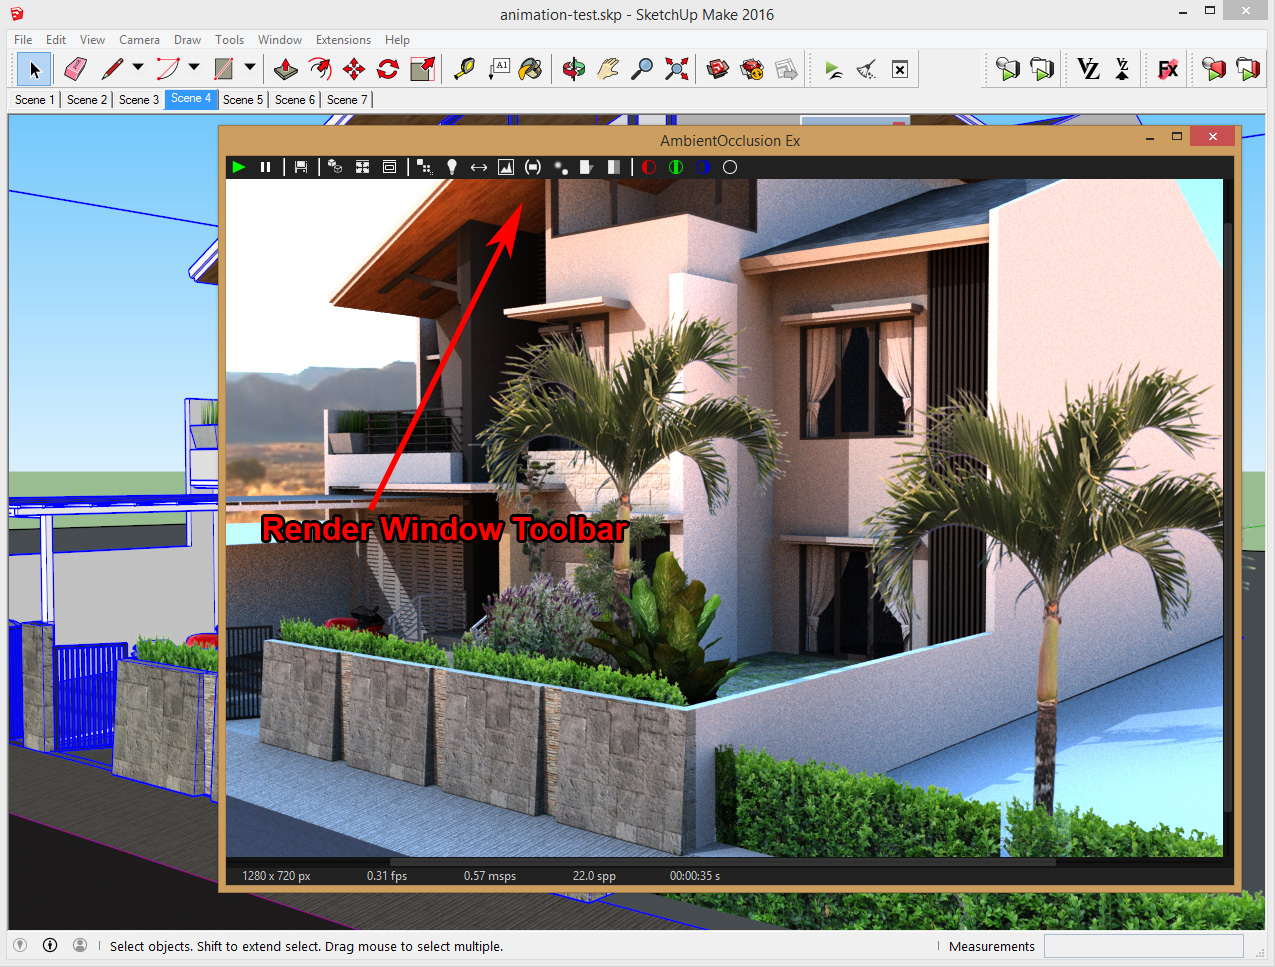 Render Window